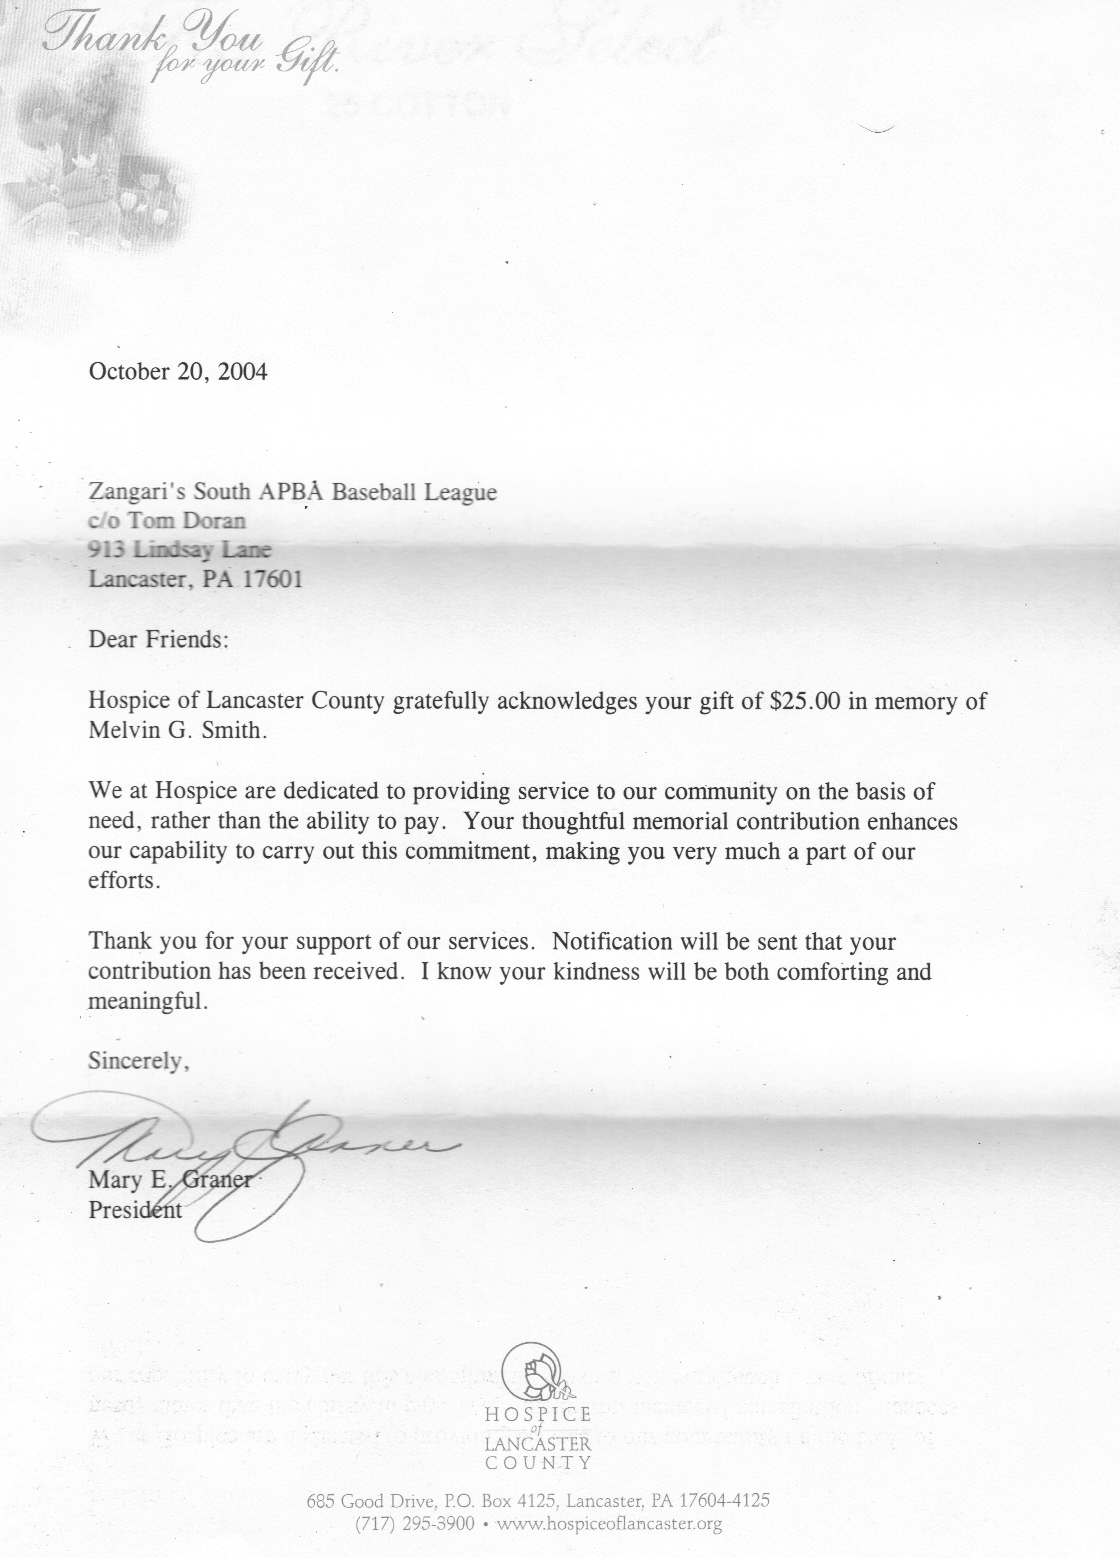 zangari s south apba baseball league schedule proposal 1996 · expansion committee 1 6 97 · honorable mention 3 30 99 · thanks 8 1 99 · job offer 5 10 01